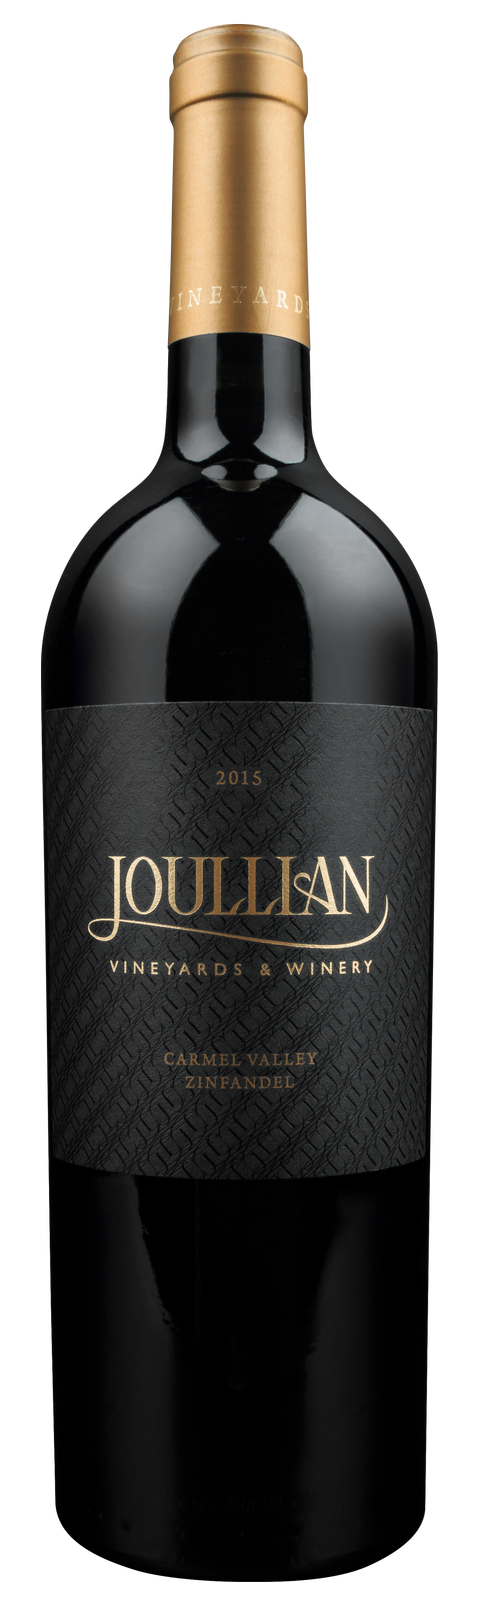 Product Image for 2015 Zinfandel 750ml